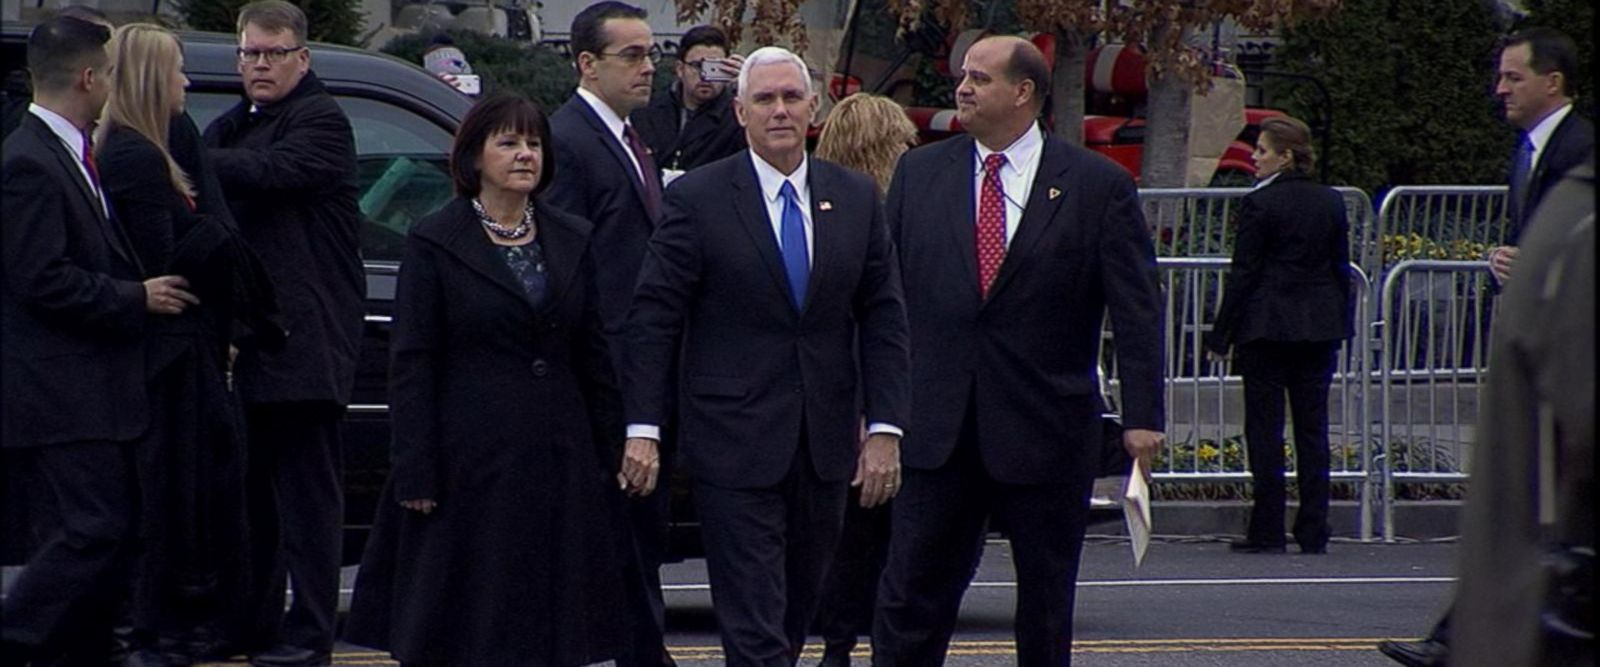 VIDEO: Vice President-Elect Mike Pence Arrives at St. John's Church